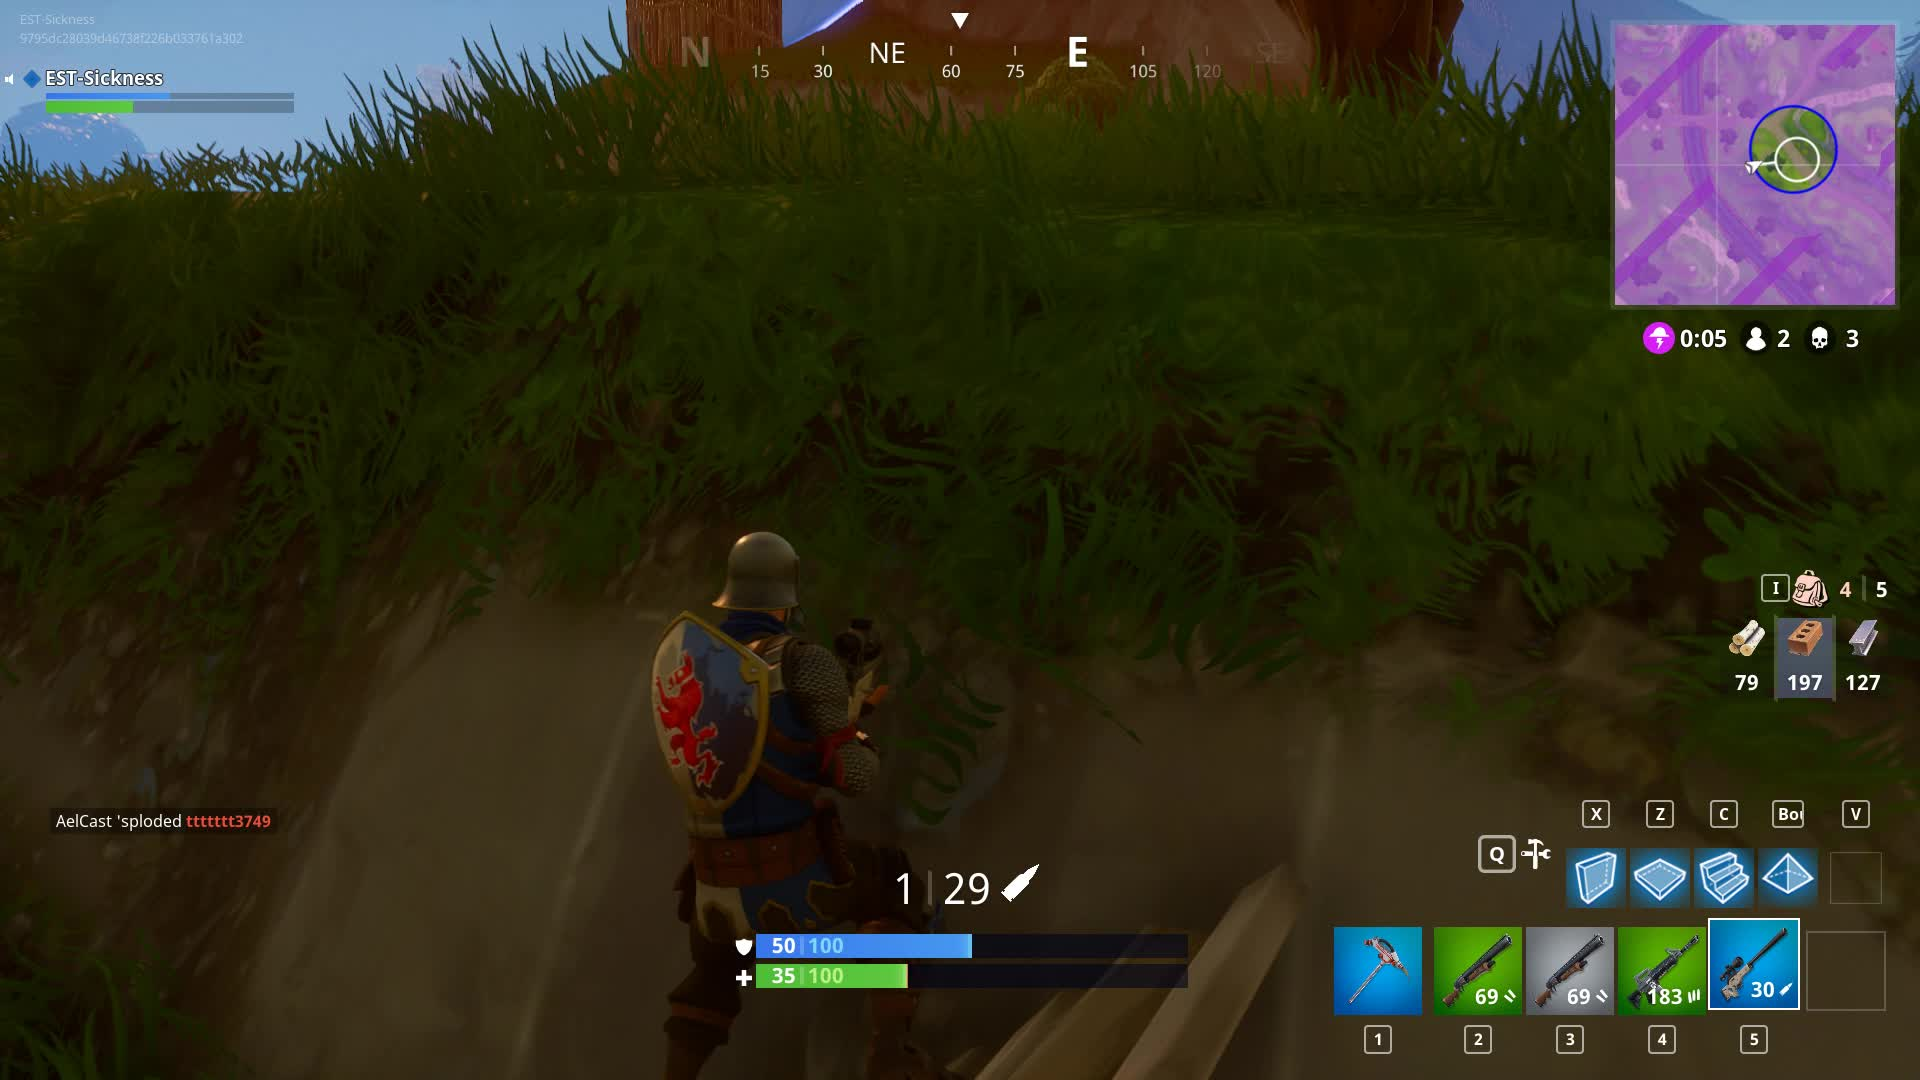 FortNiteBR, Fortnite, whatever GIFs